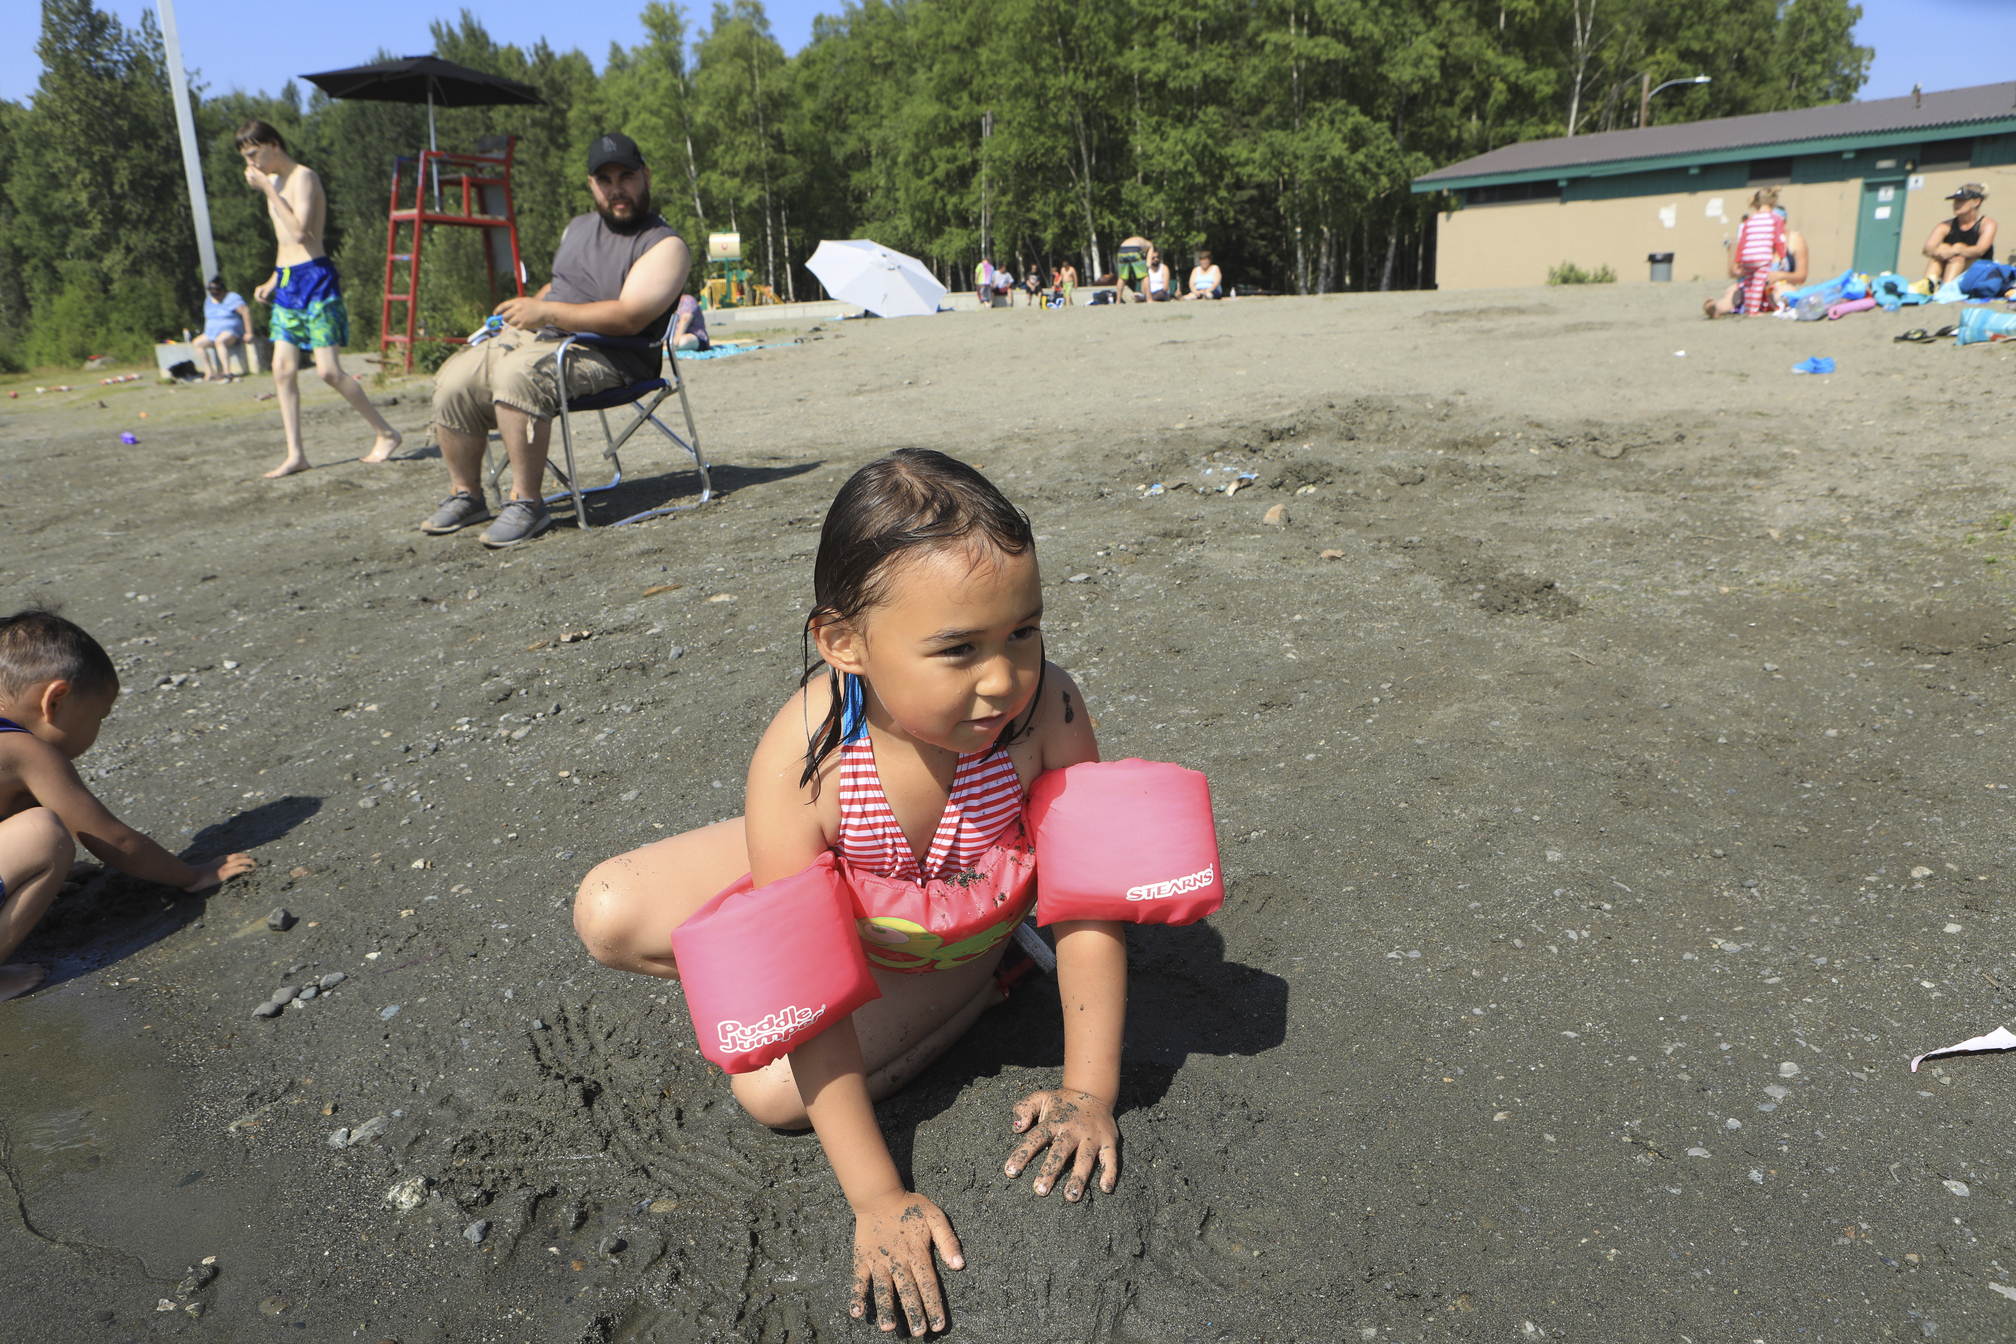 Alaskans put away jackets, get out sunscreen amid heat wave